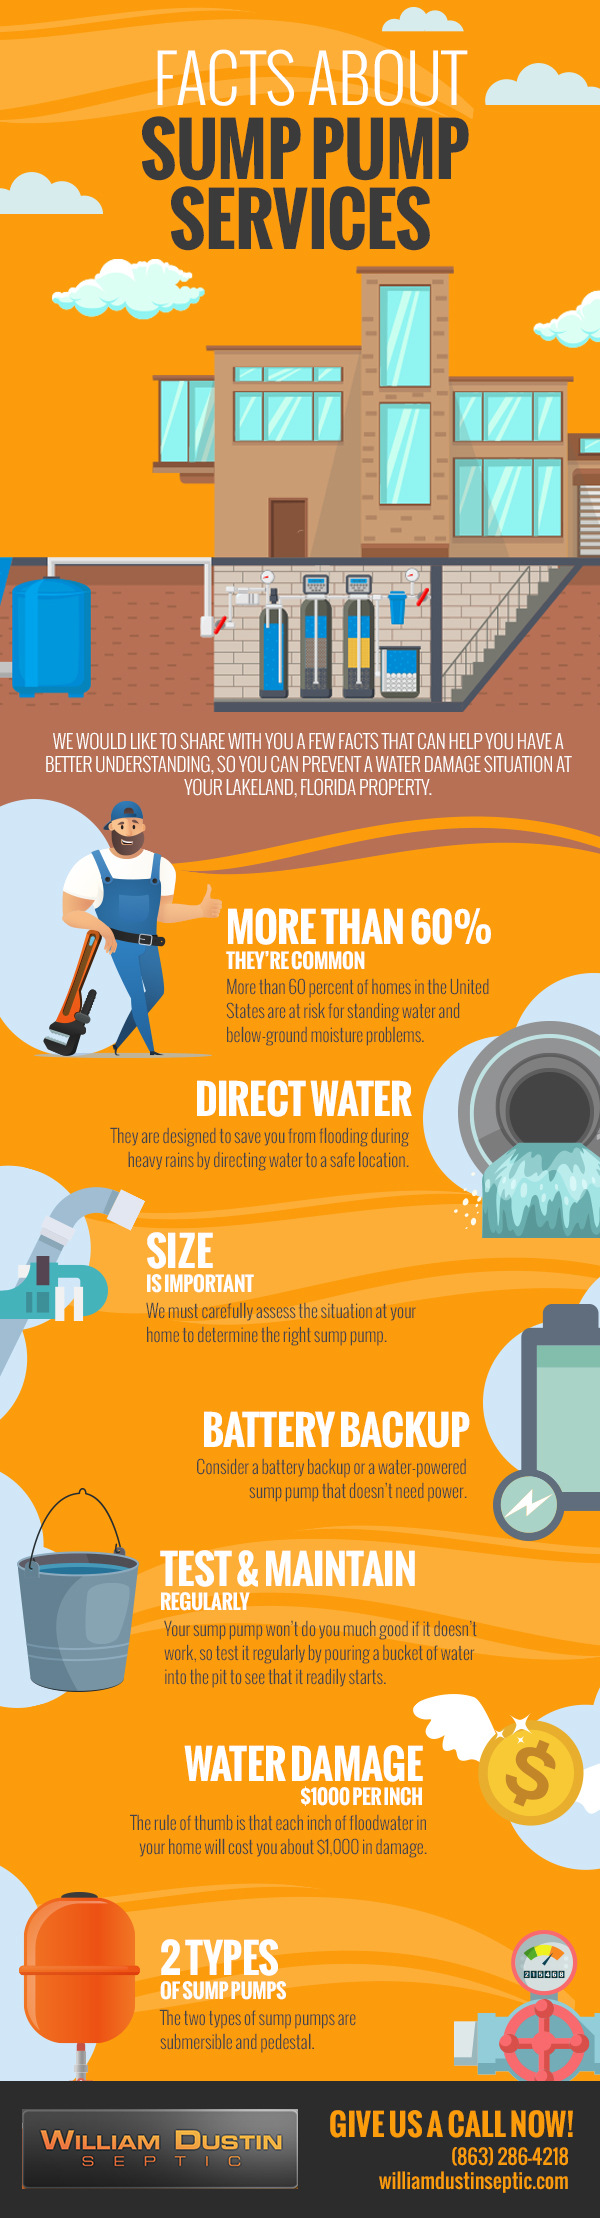 Facts About Sump Pump Services [infographic]